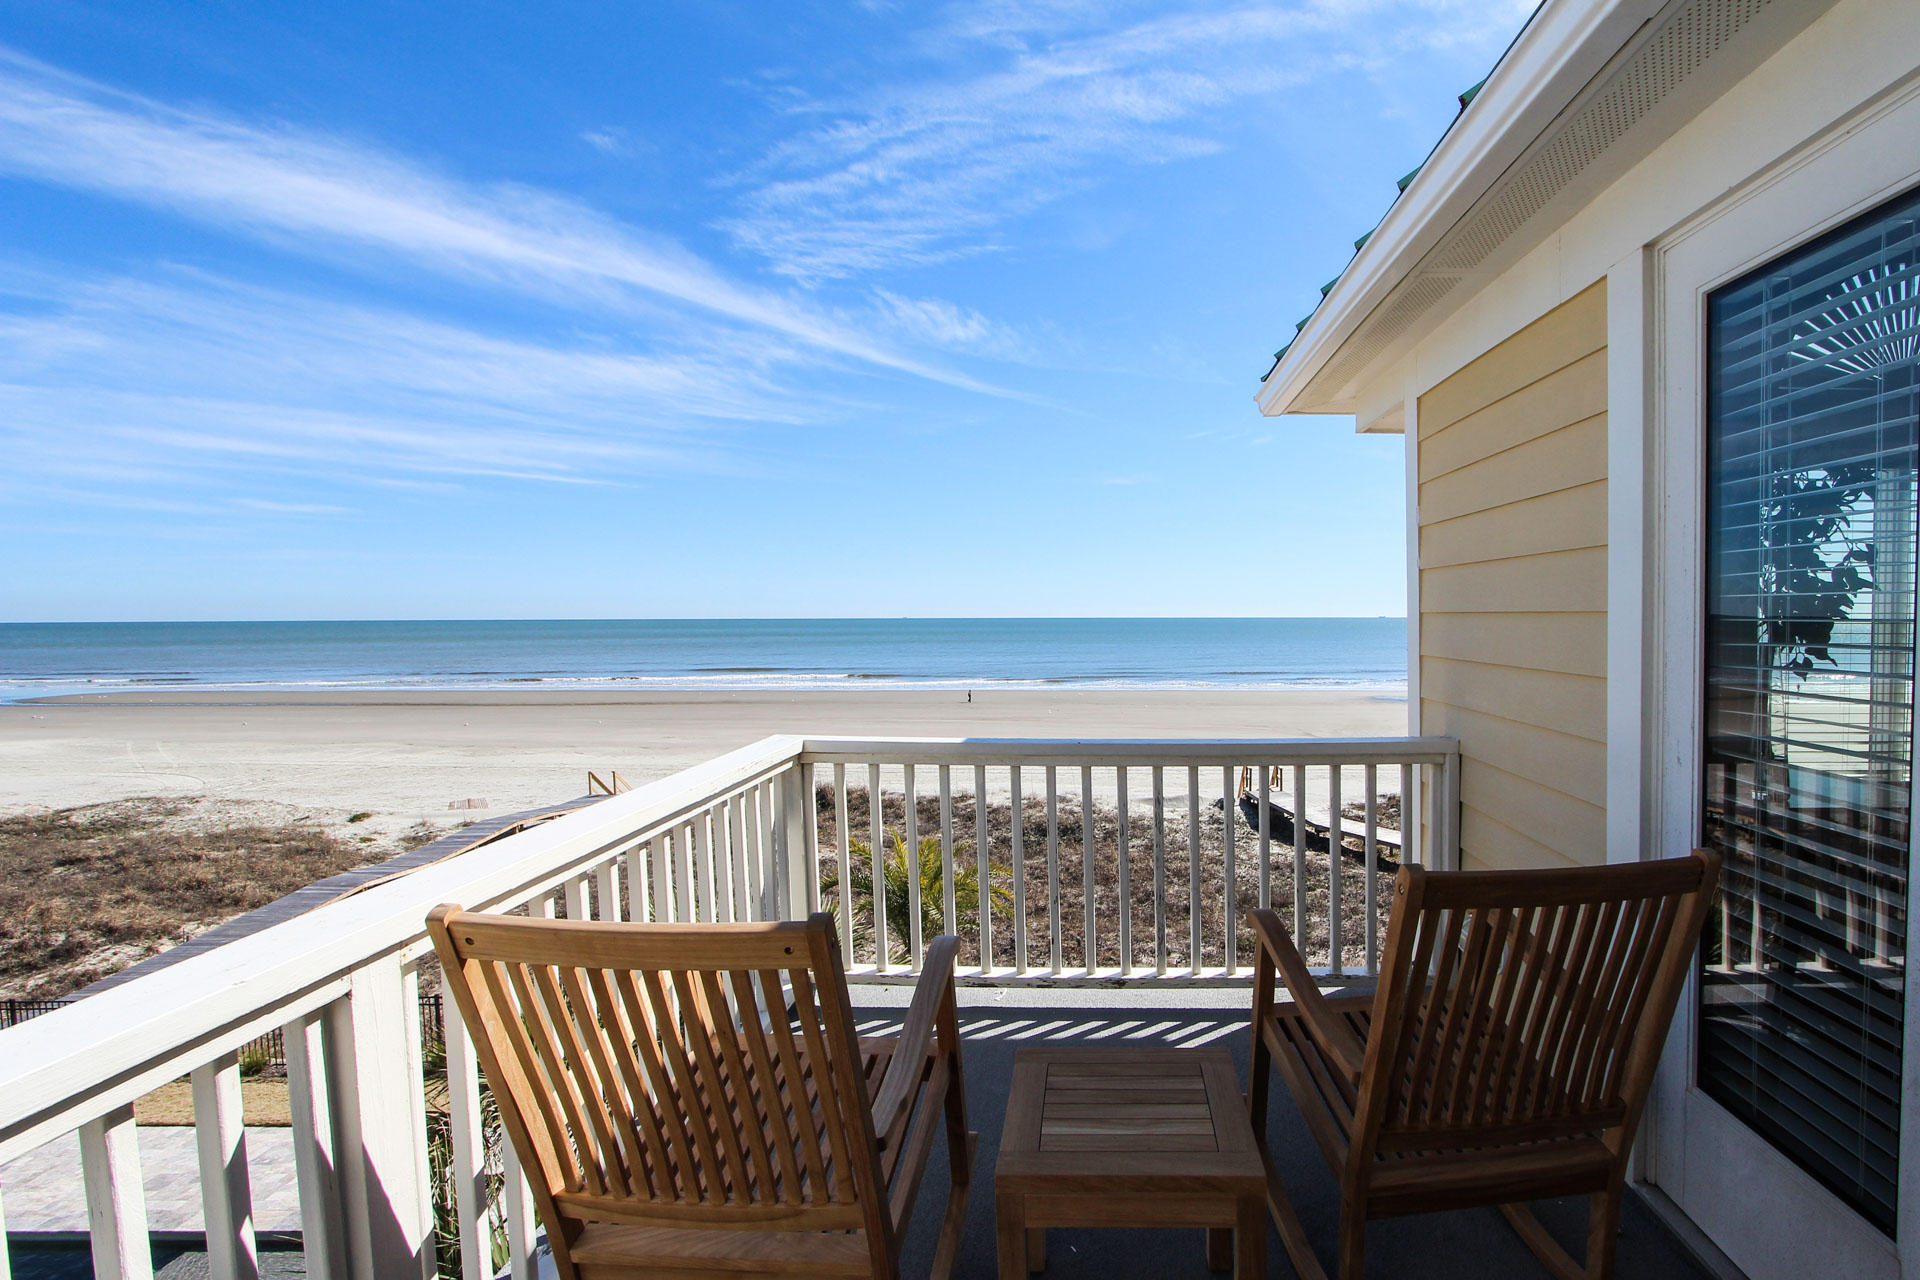 Isle of Palms Homes For Sale - 810 Ocean, Isle of Palms, SC - 13